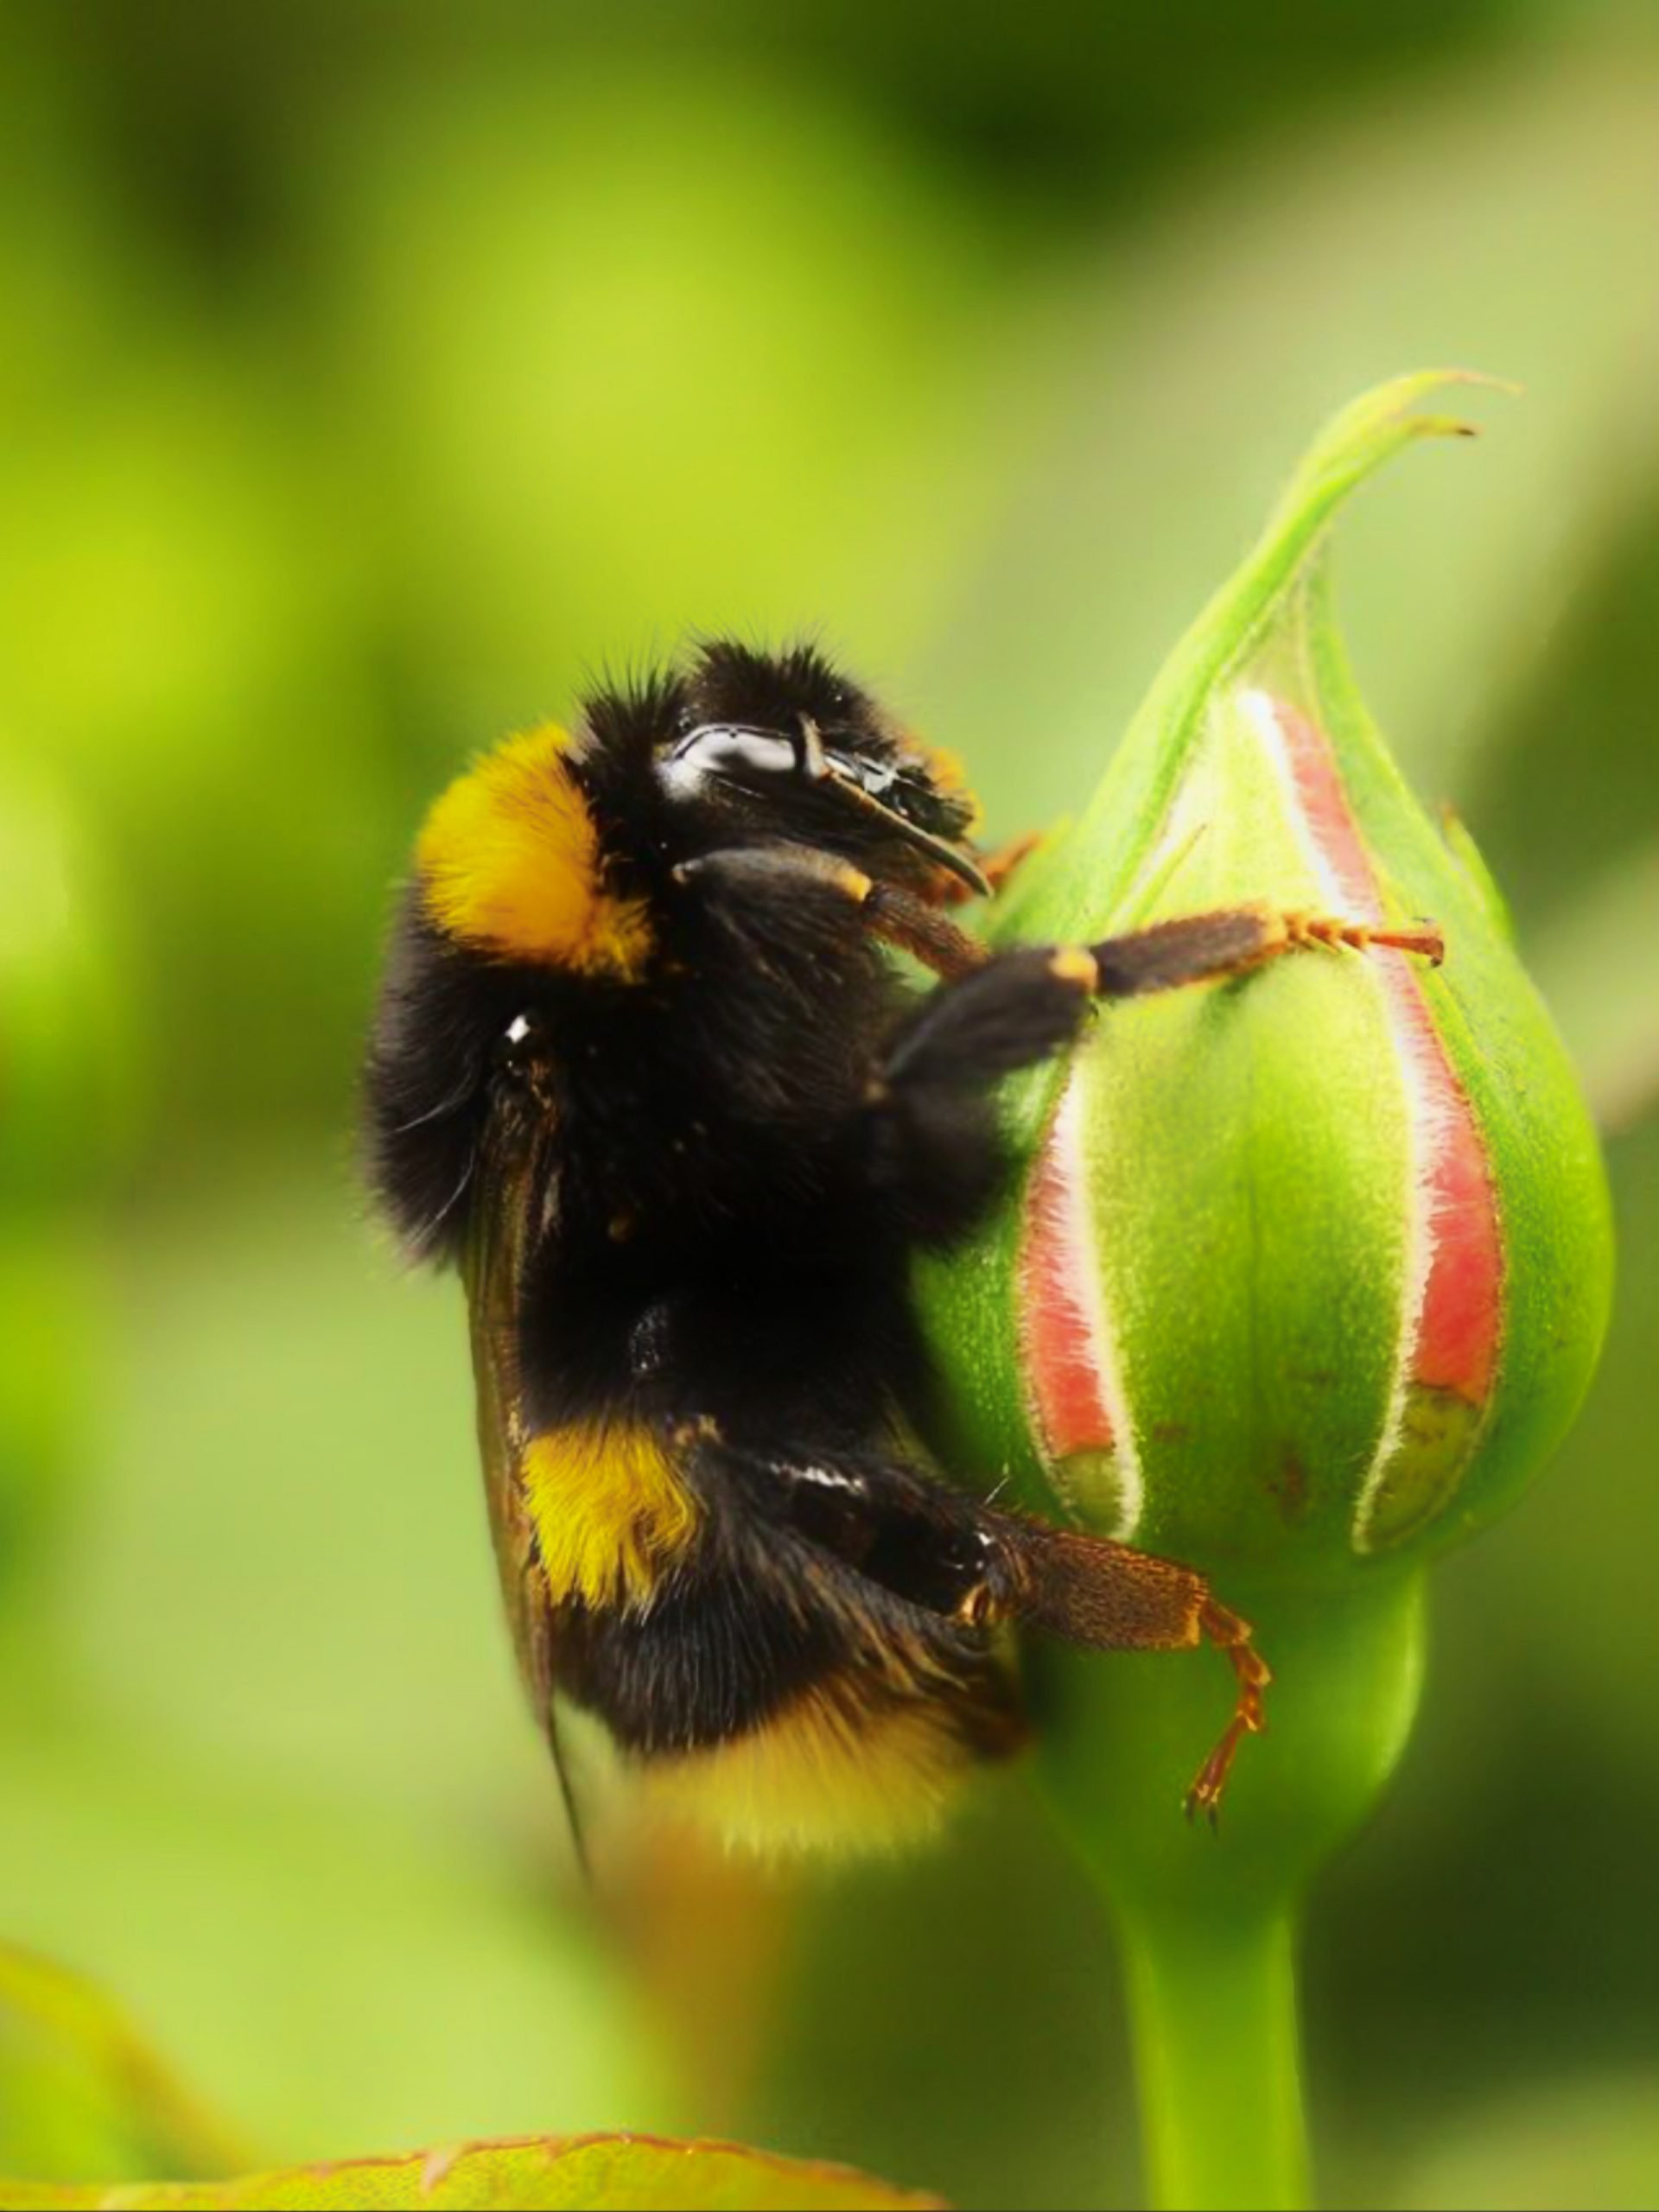 A Bumblebee on flower bud